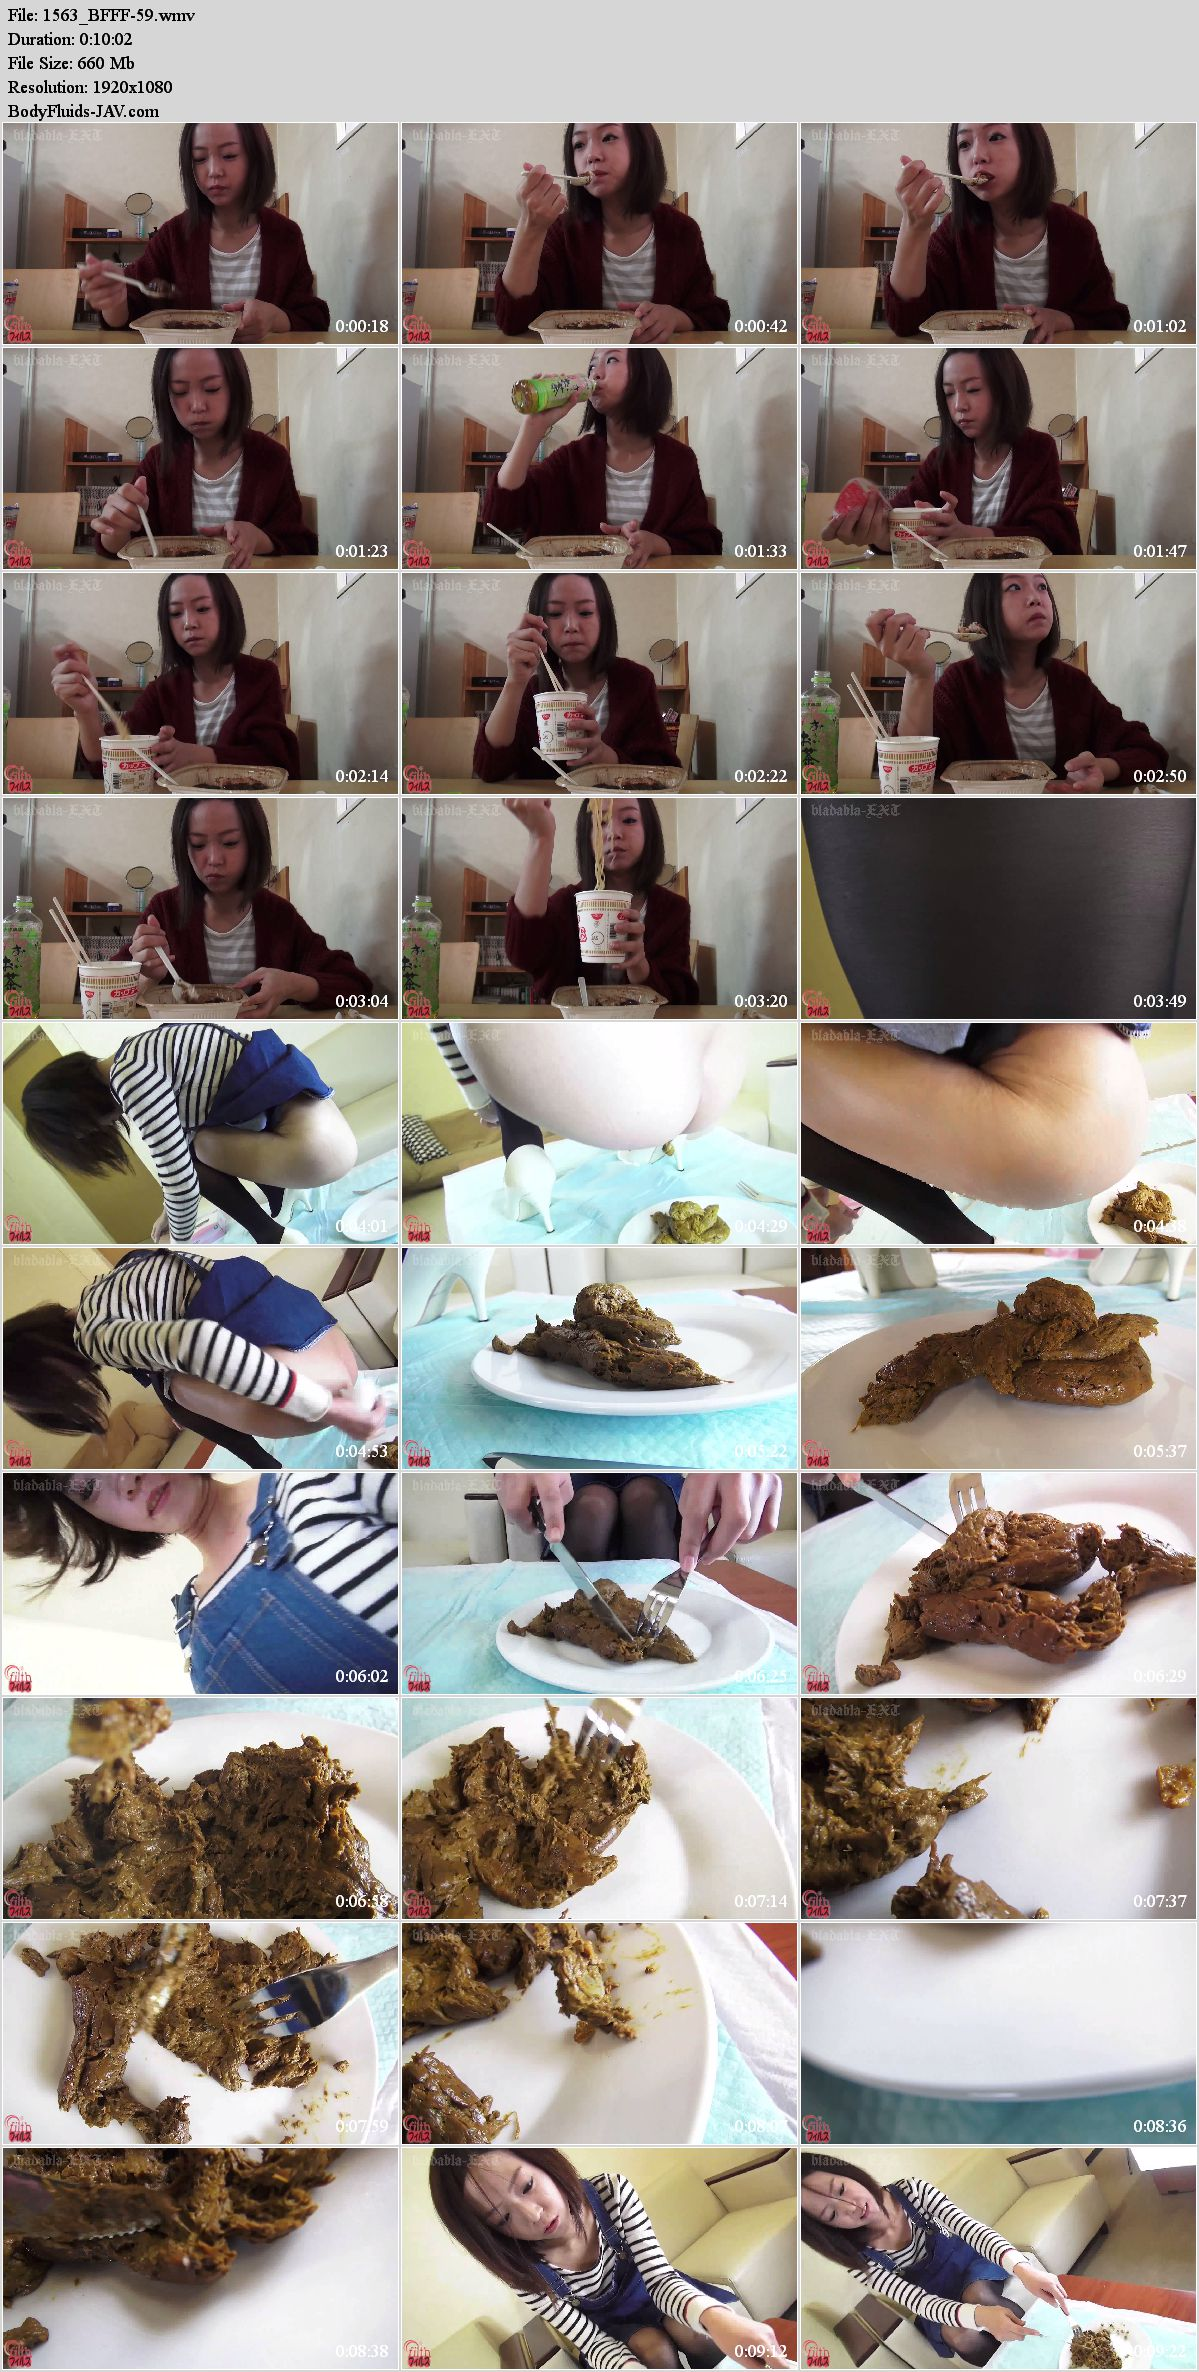 BFFF-59 Girl pooping in plate and explore faeces. (HD 1080p)